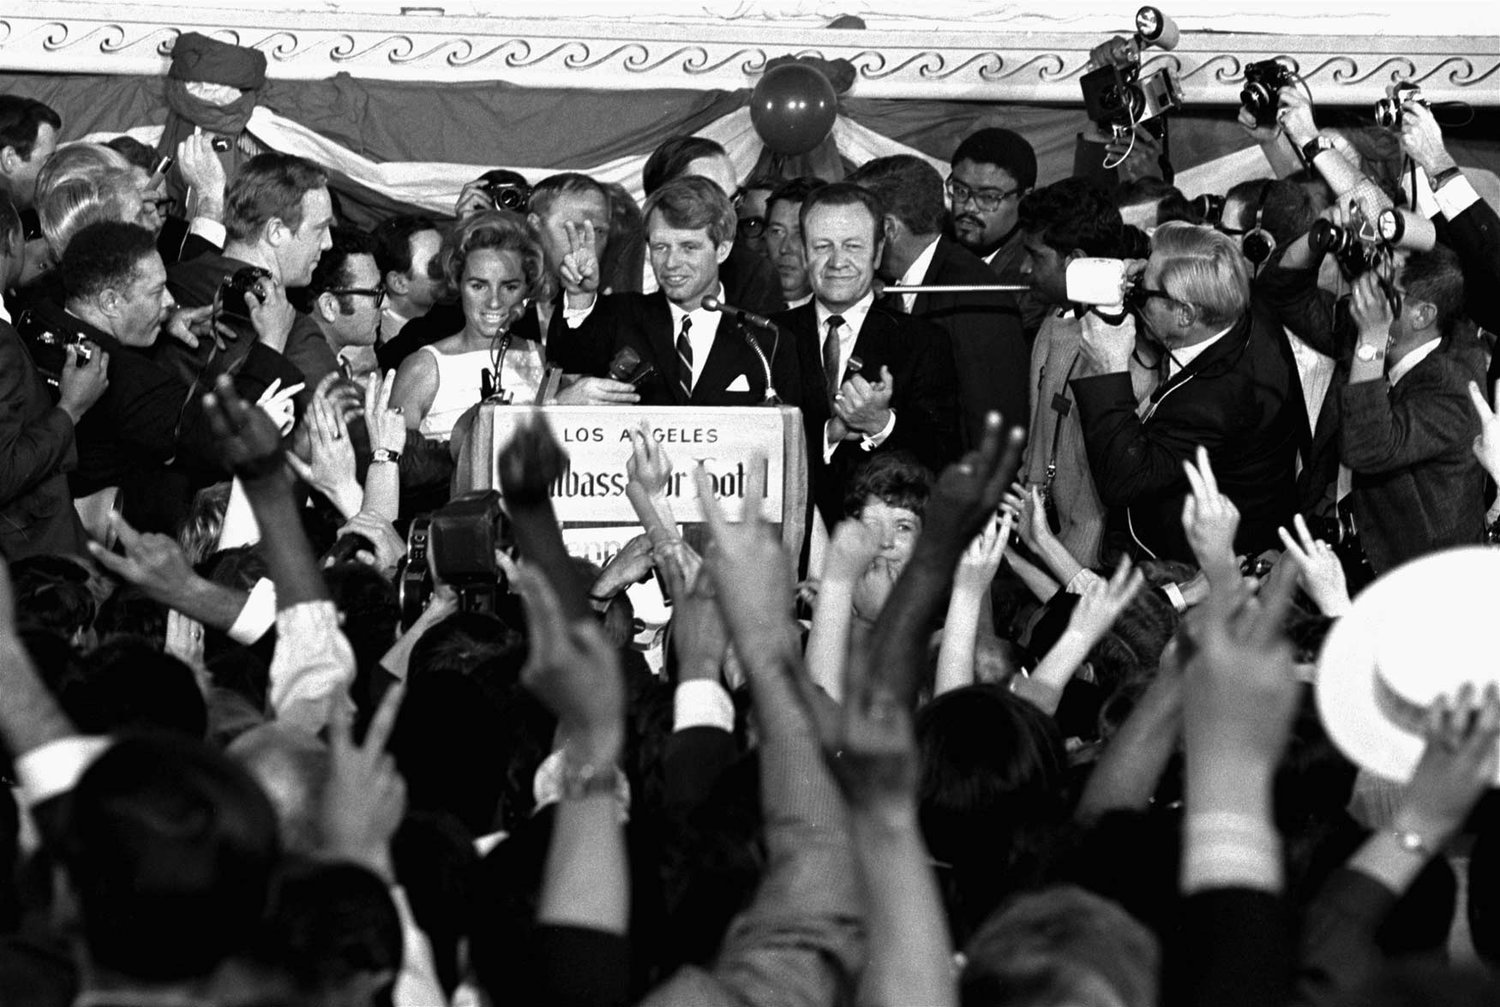 How the AP covered the RFK assassination 50 years ago — AP Images Spotlight